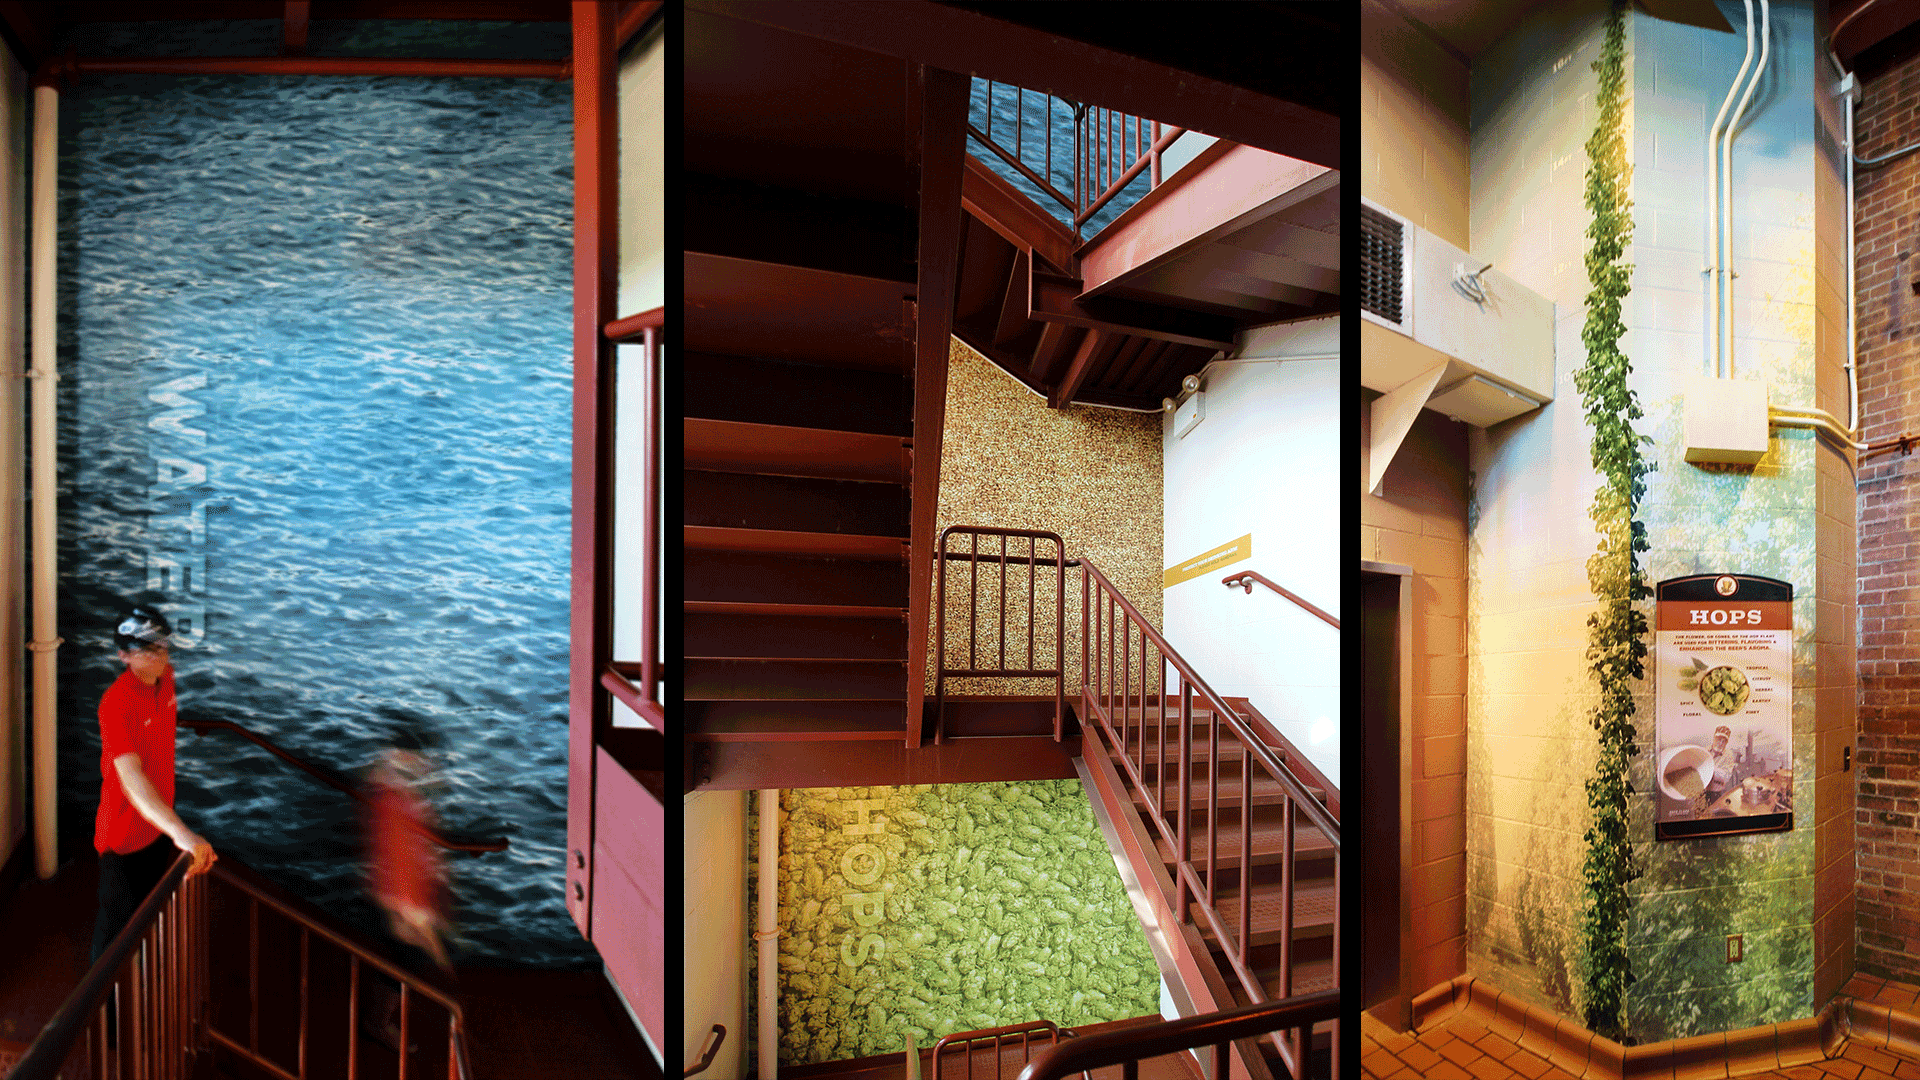 Stairwell ingredient images